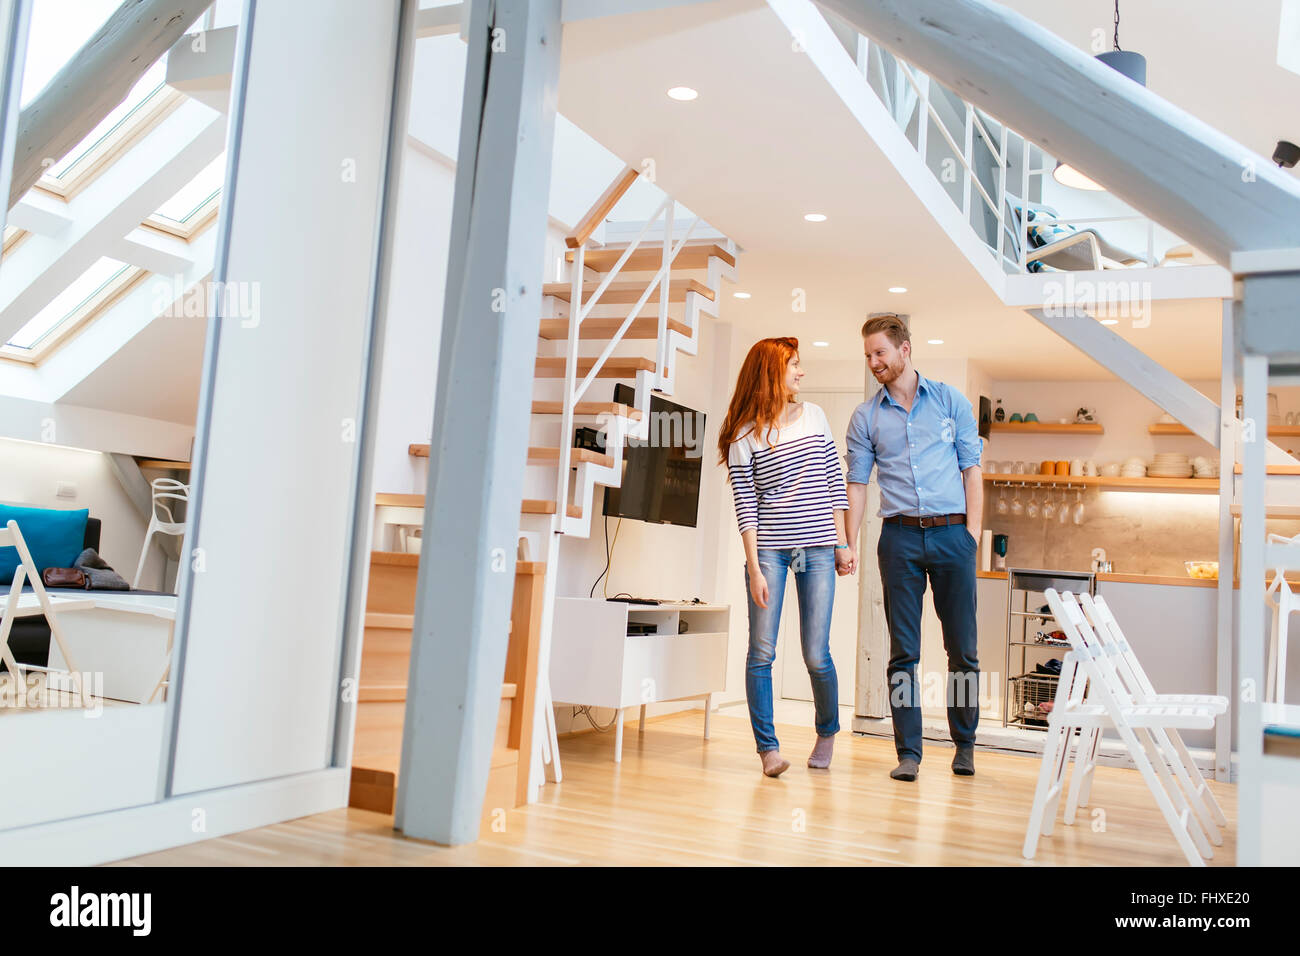 Couple moving in new apartment with smiles on their faces - Stock Image